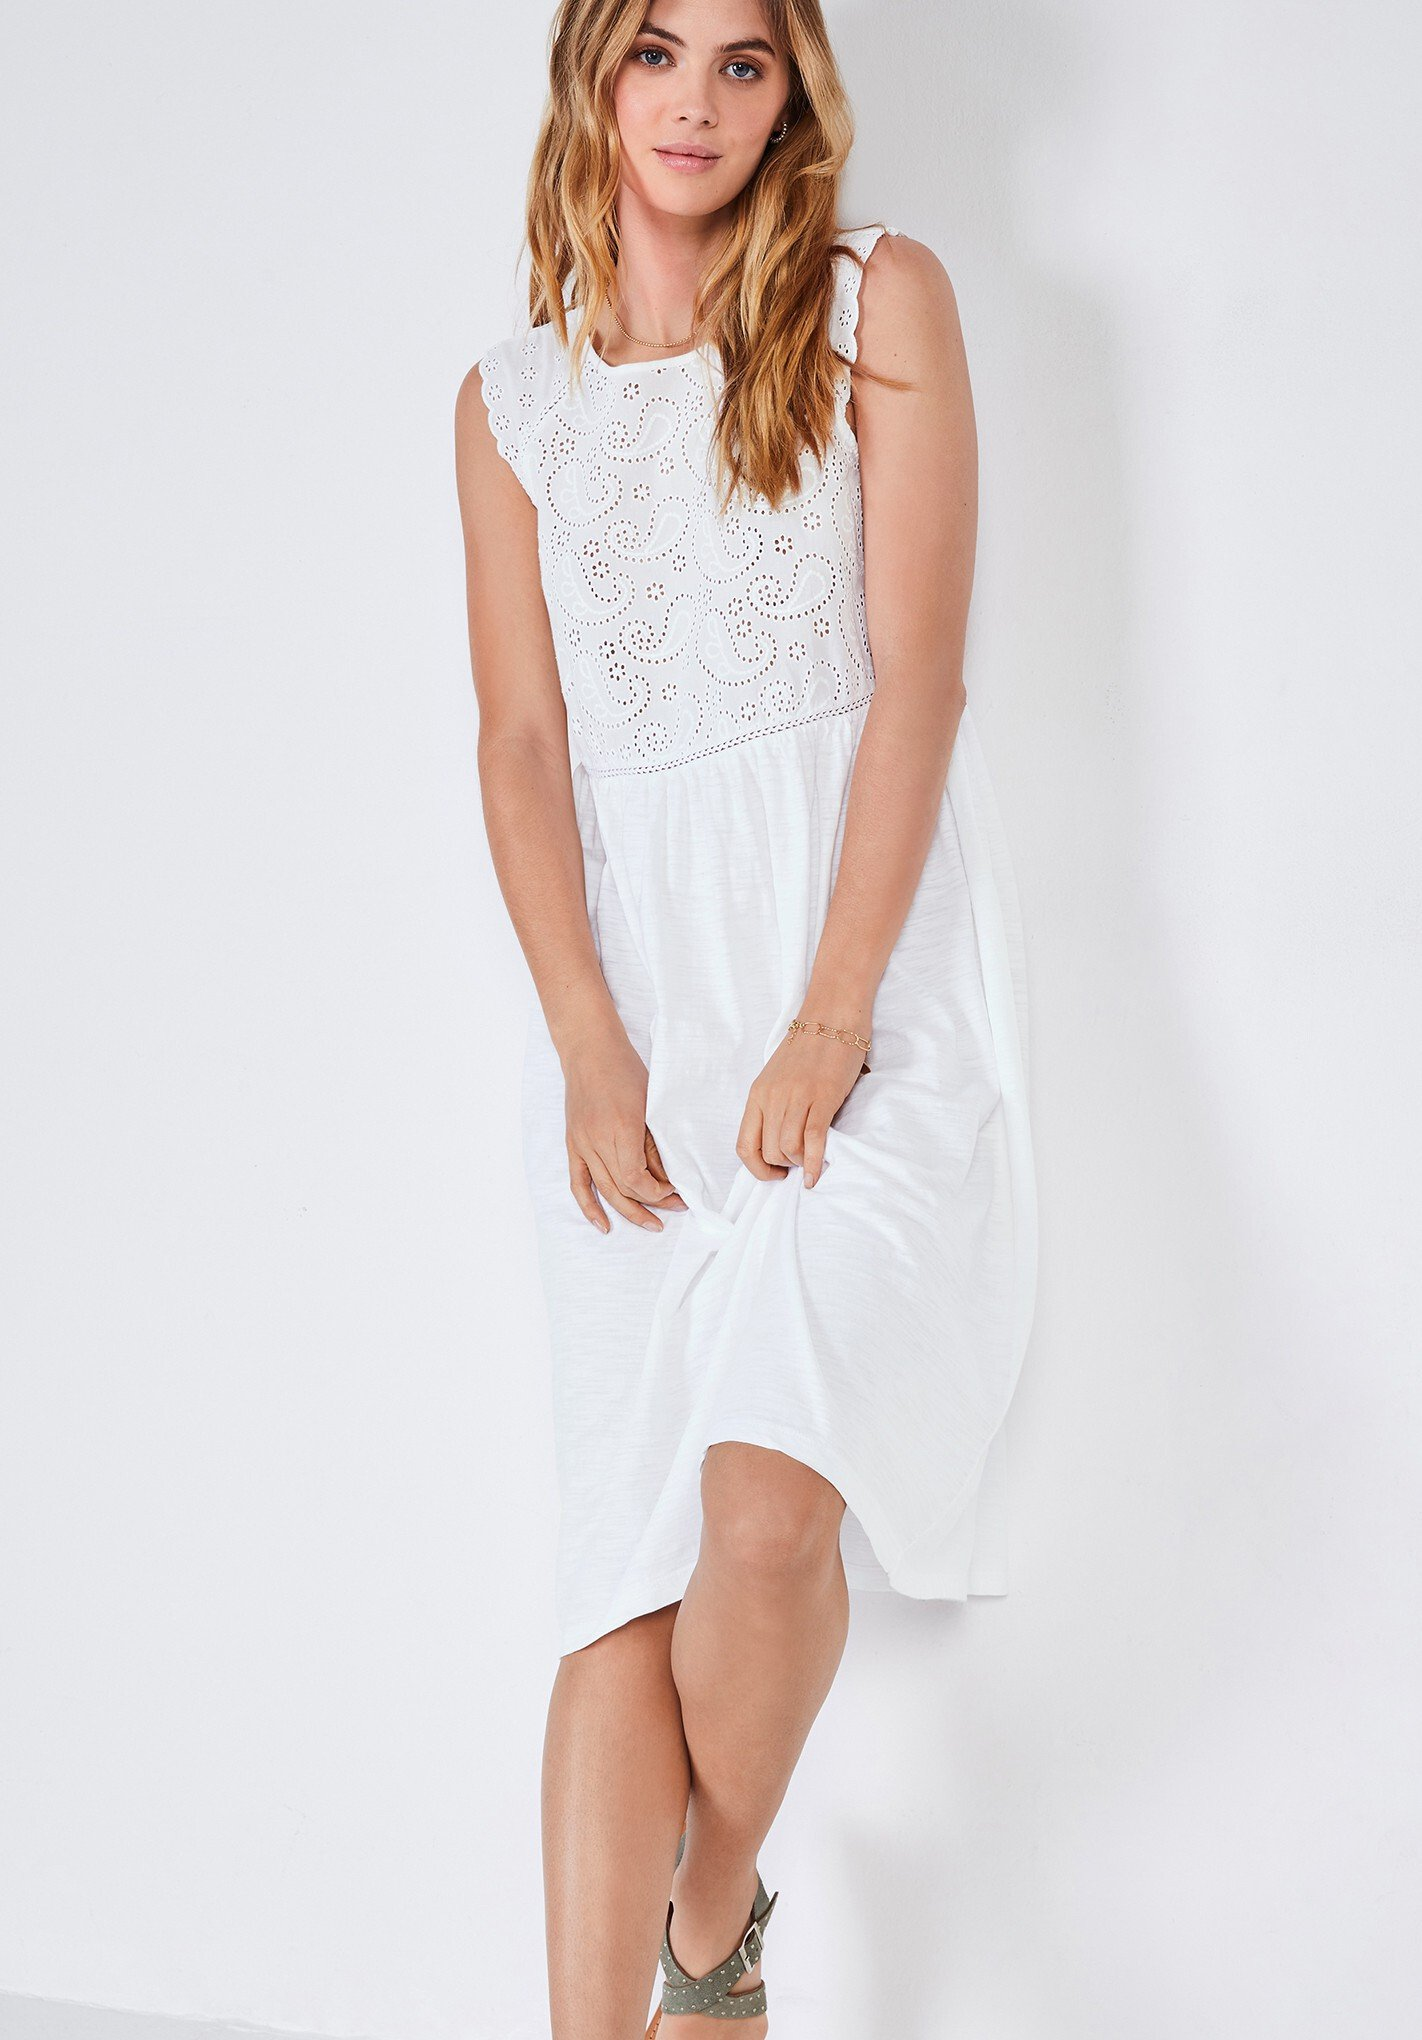 Hush Broderie Jersey Dress White 100% Cotton